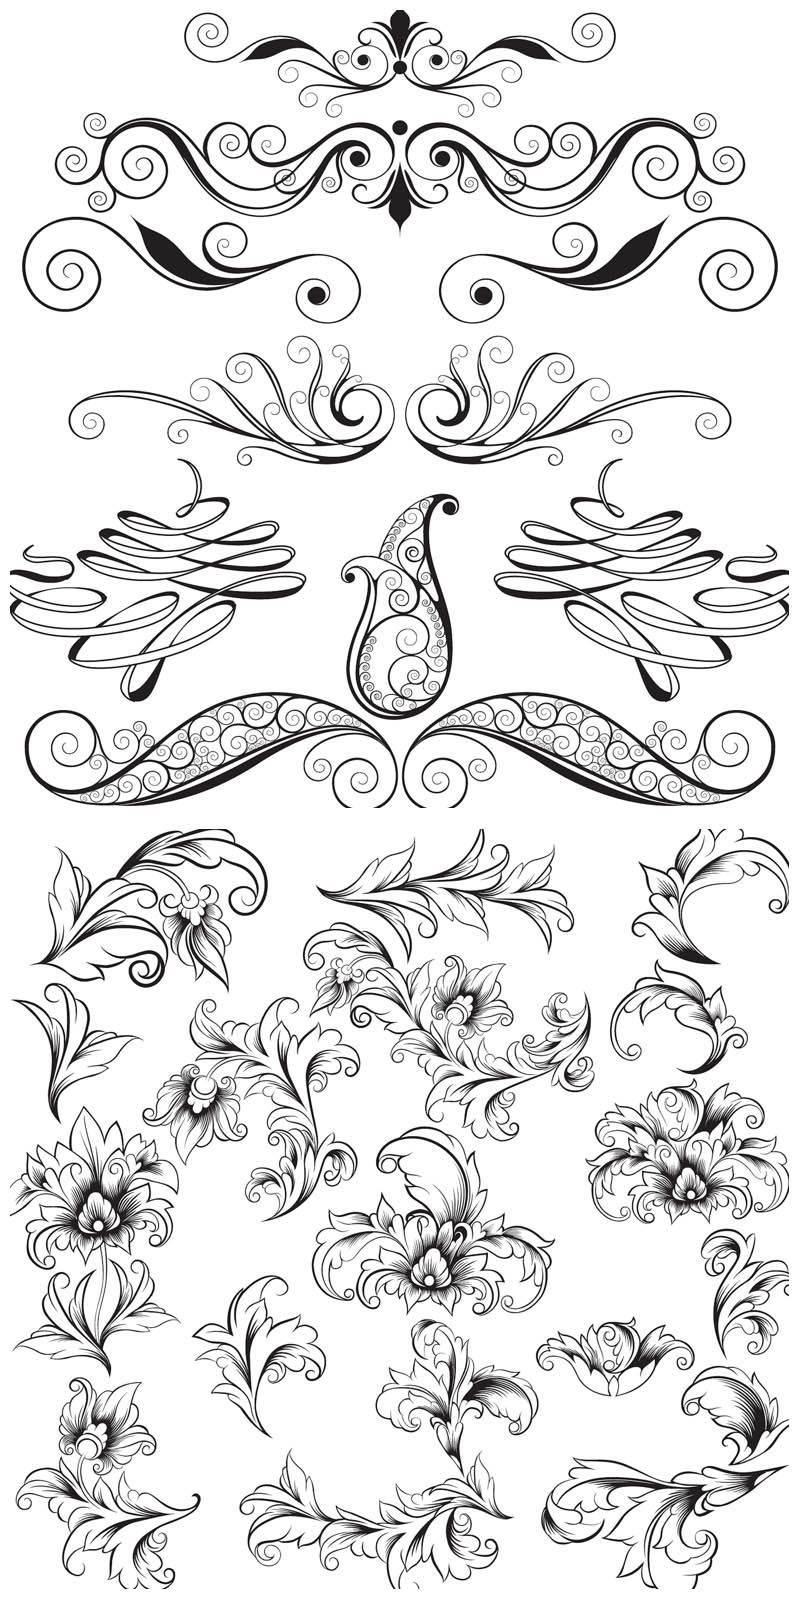 Wedding ornaments - 2 Sets Of Vector Vintage Decor Elements For Your Ornaments Classic Cards Wedding Invitations